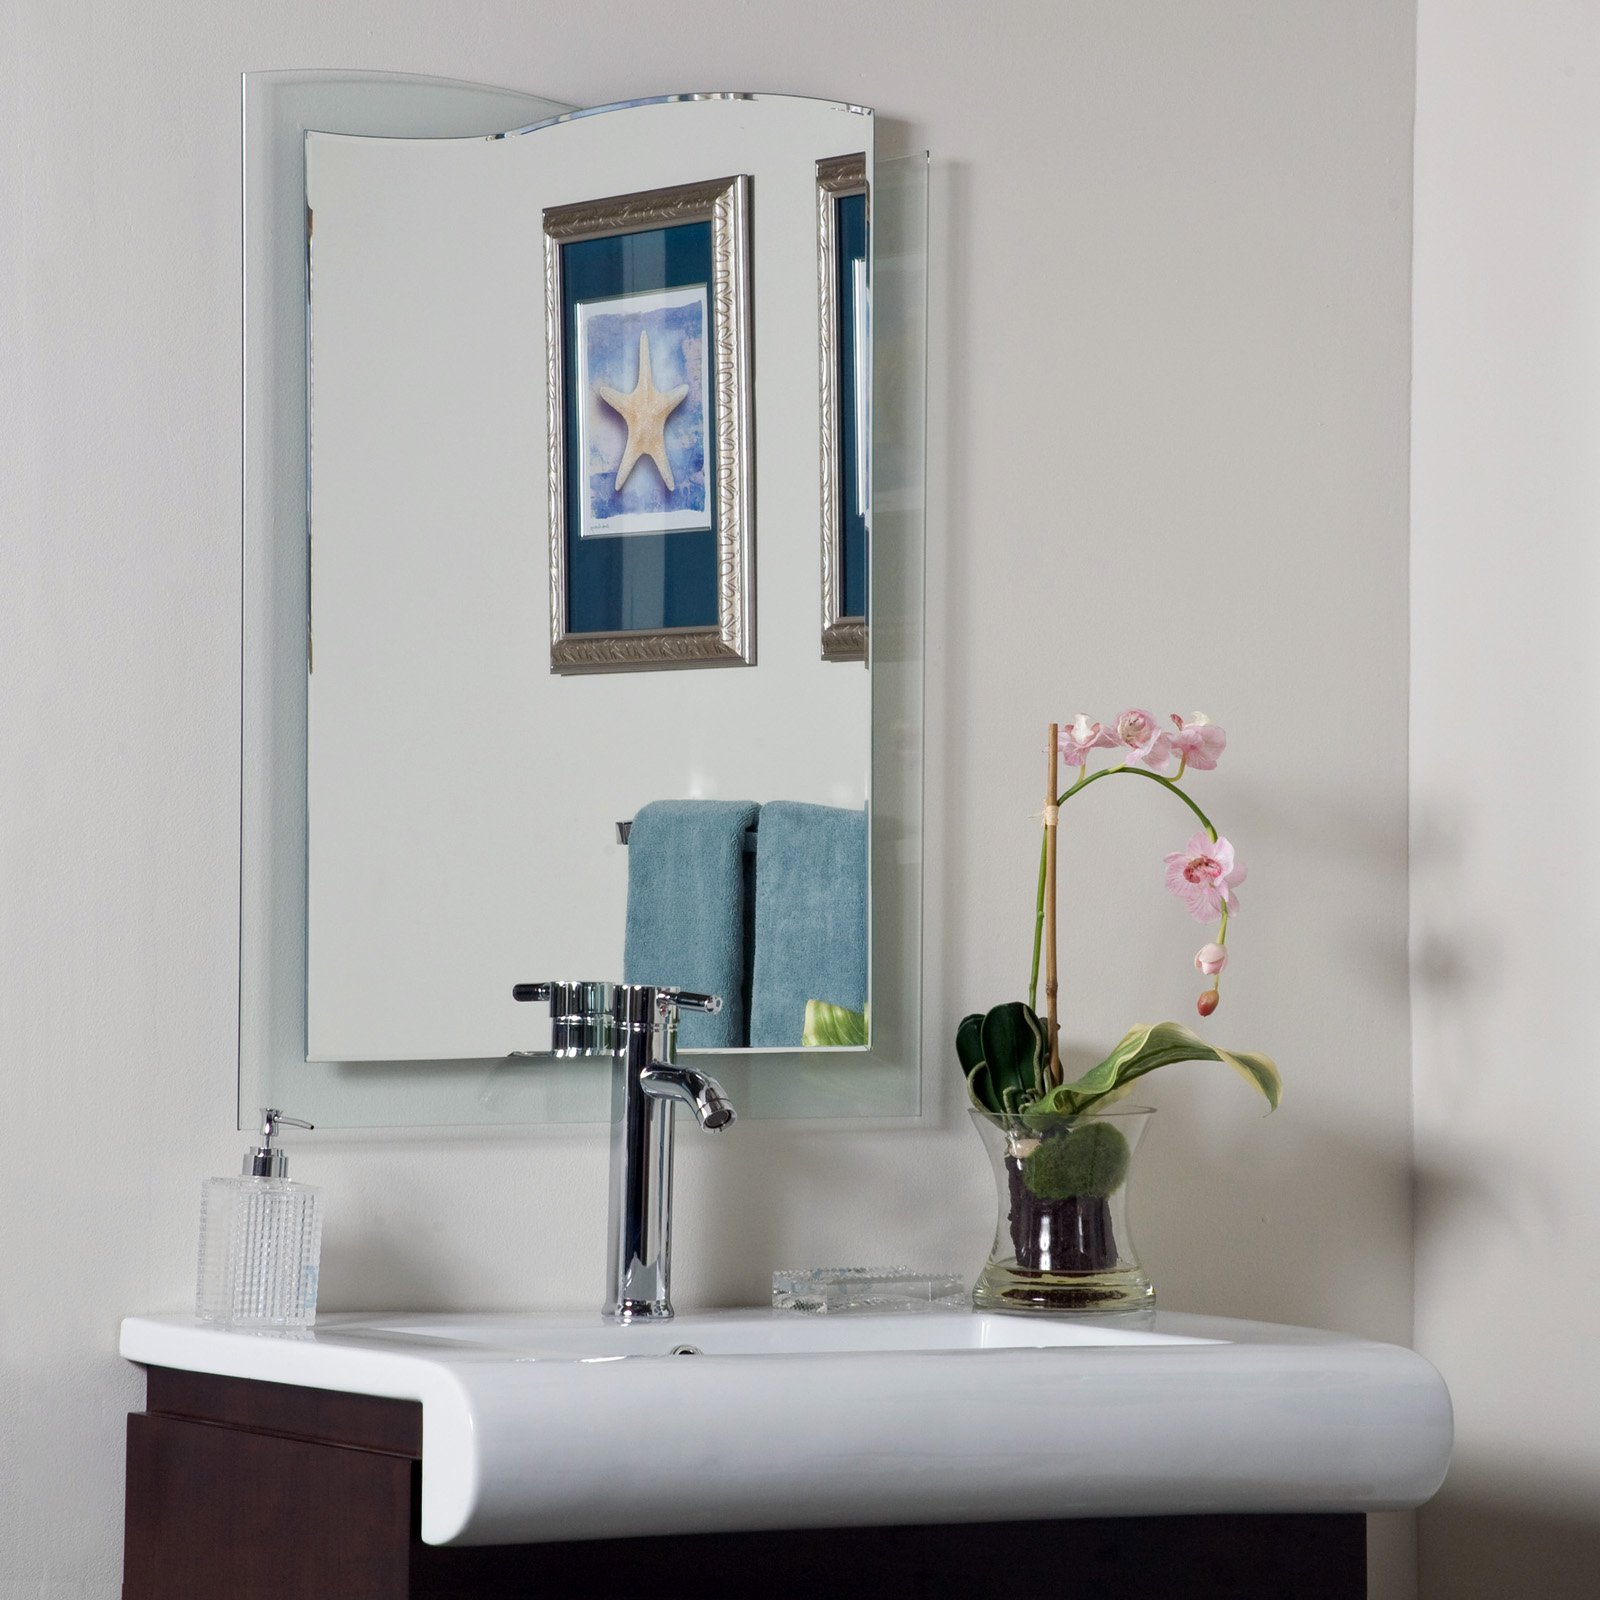 Décor Wonderland Tula Modern Frameless Bathroom Mirror 23.6W x 31.5H in. by Decor Wonderland